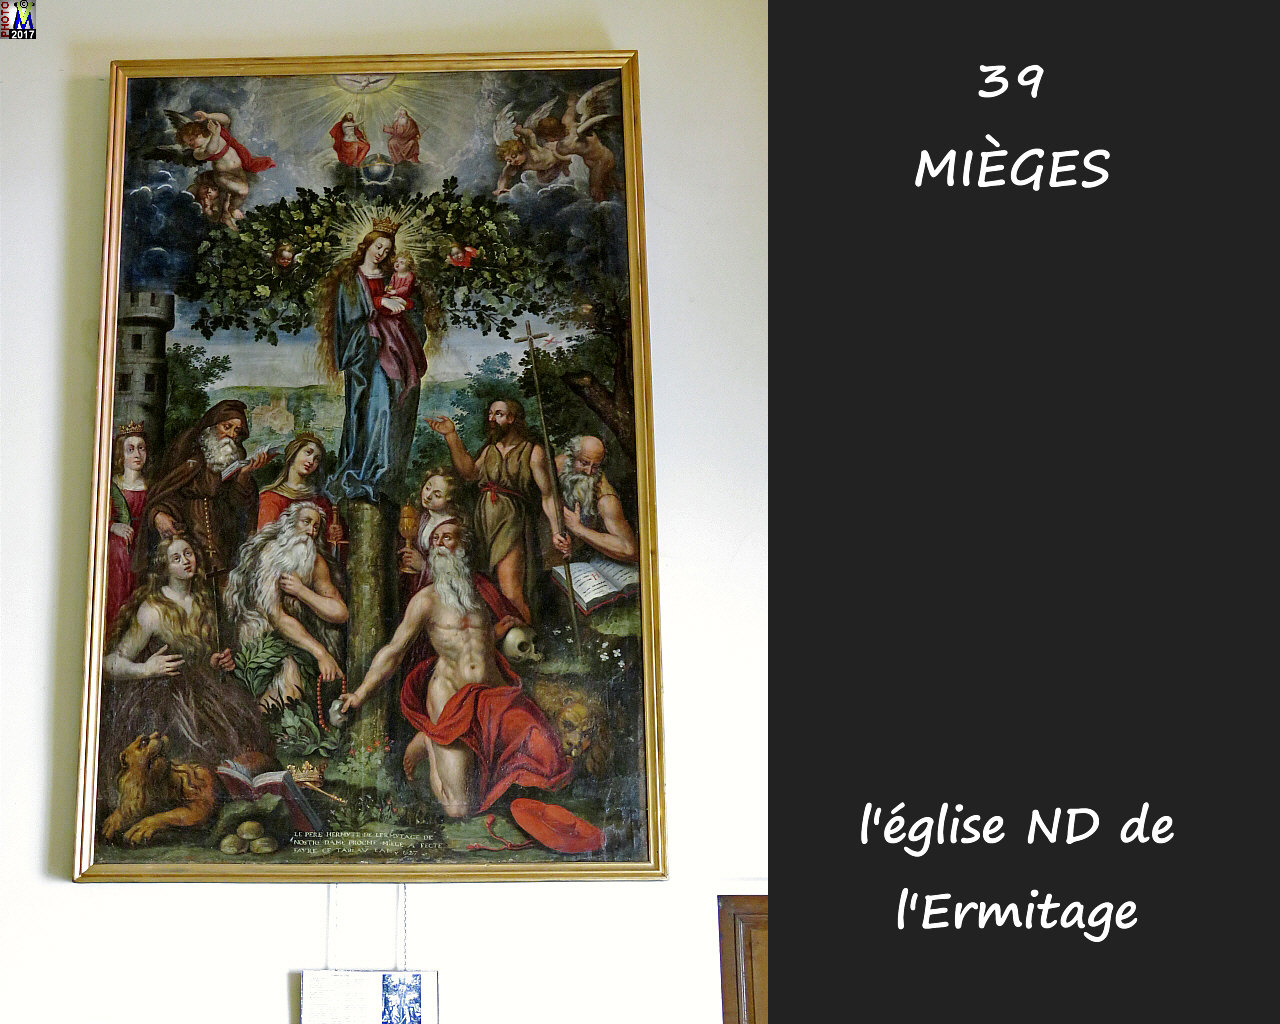 39MIEGES_Ermitage_132.jpg